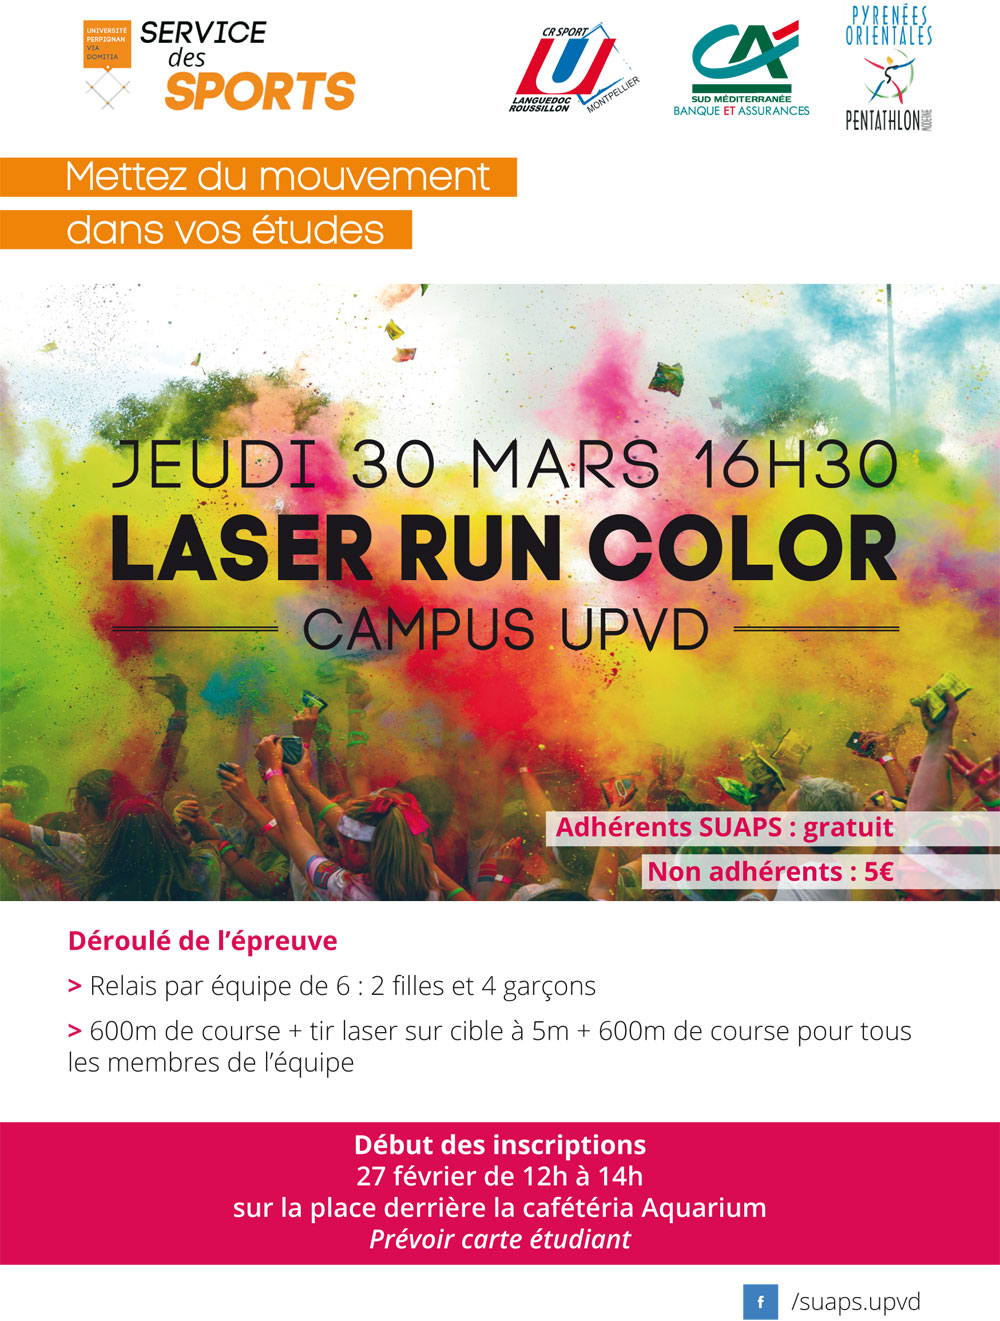 Laser run color